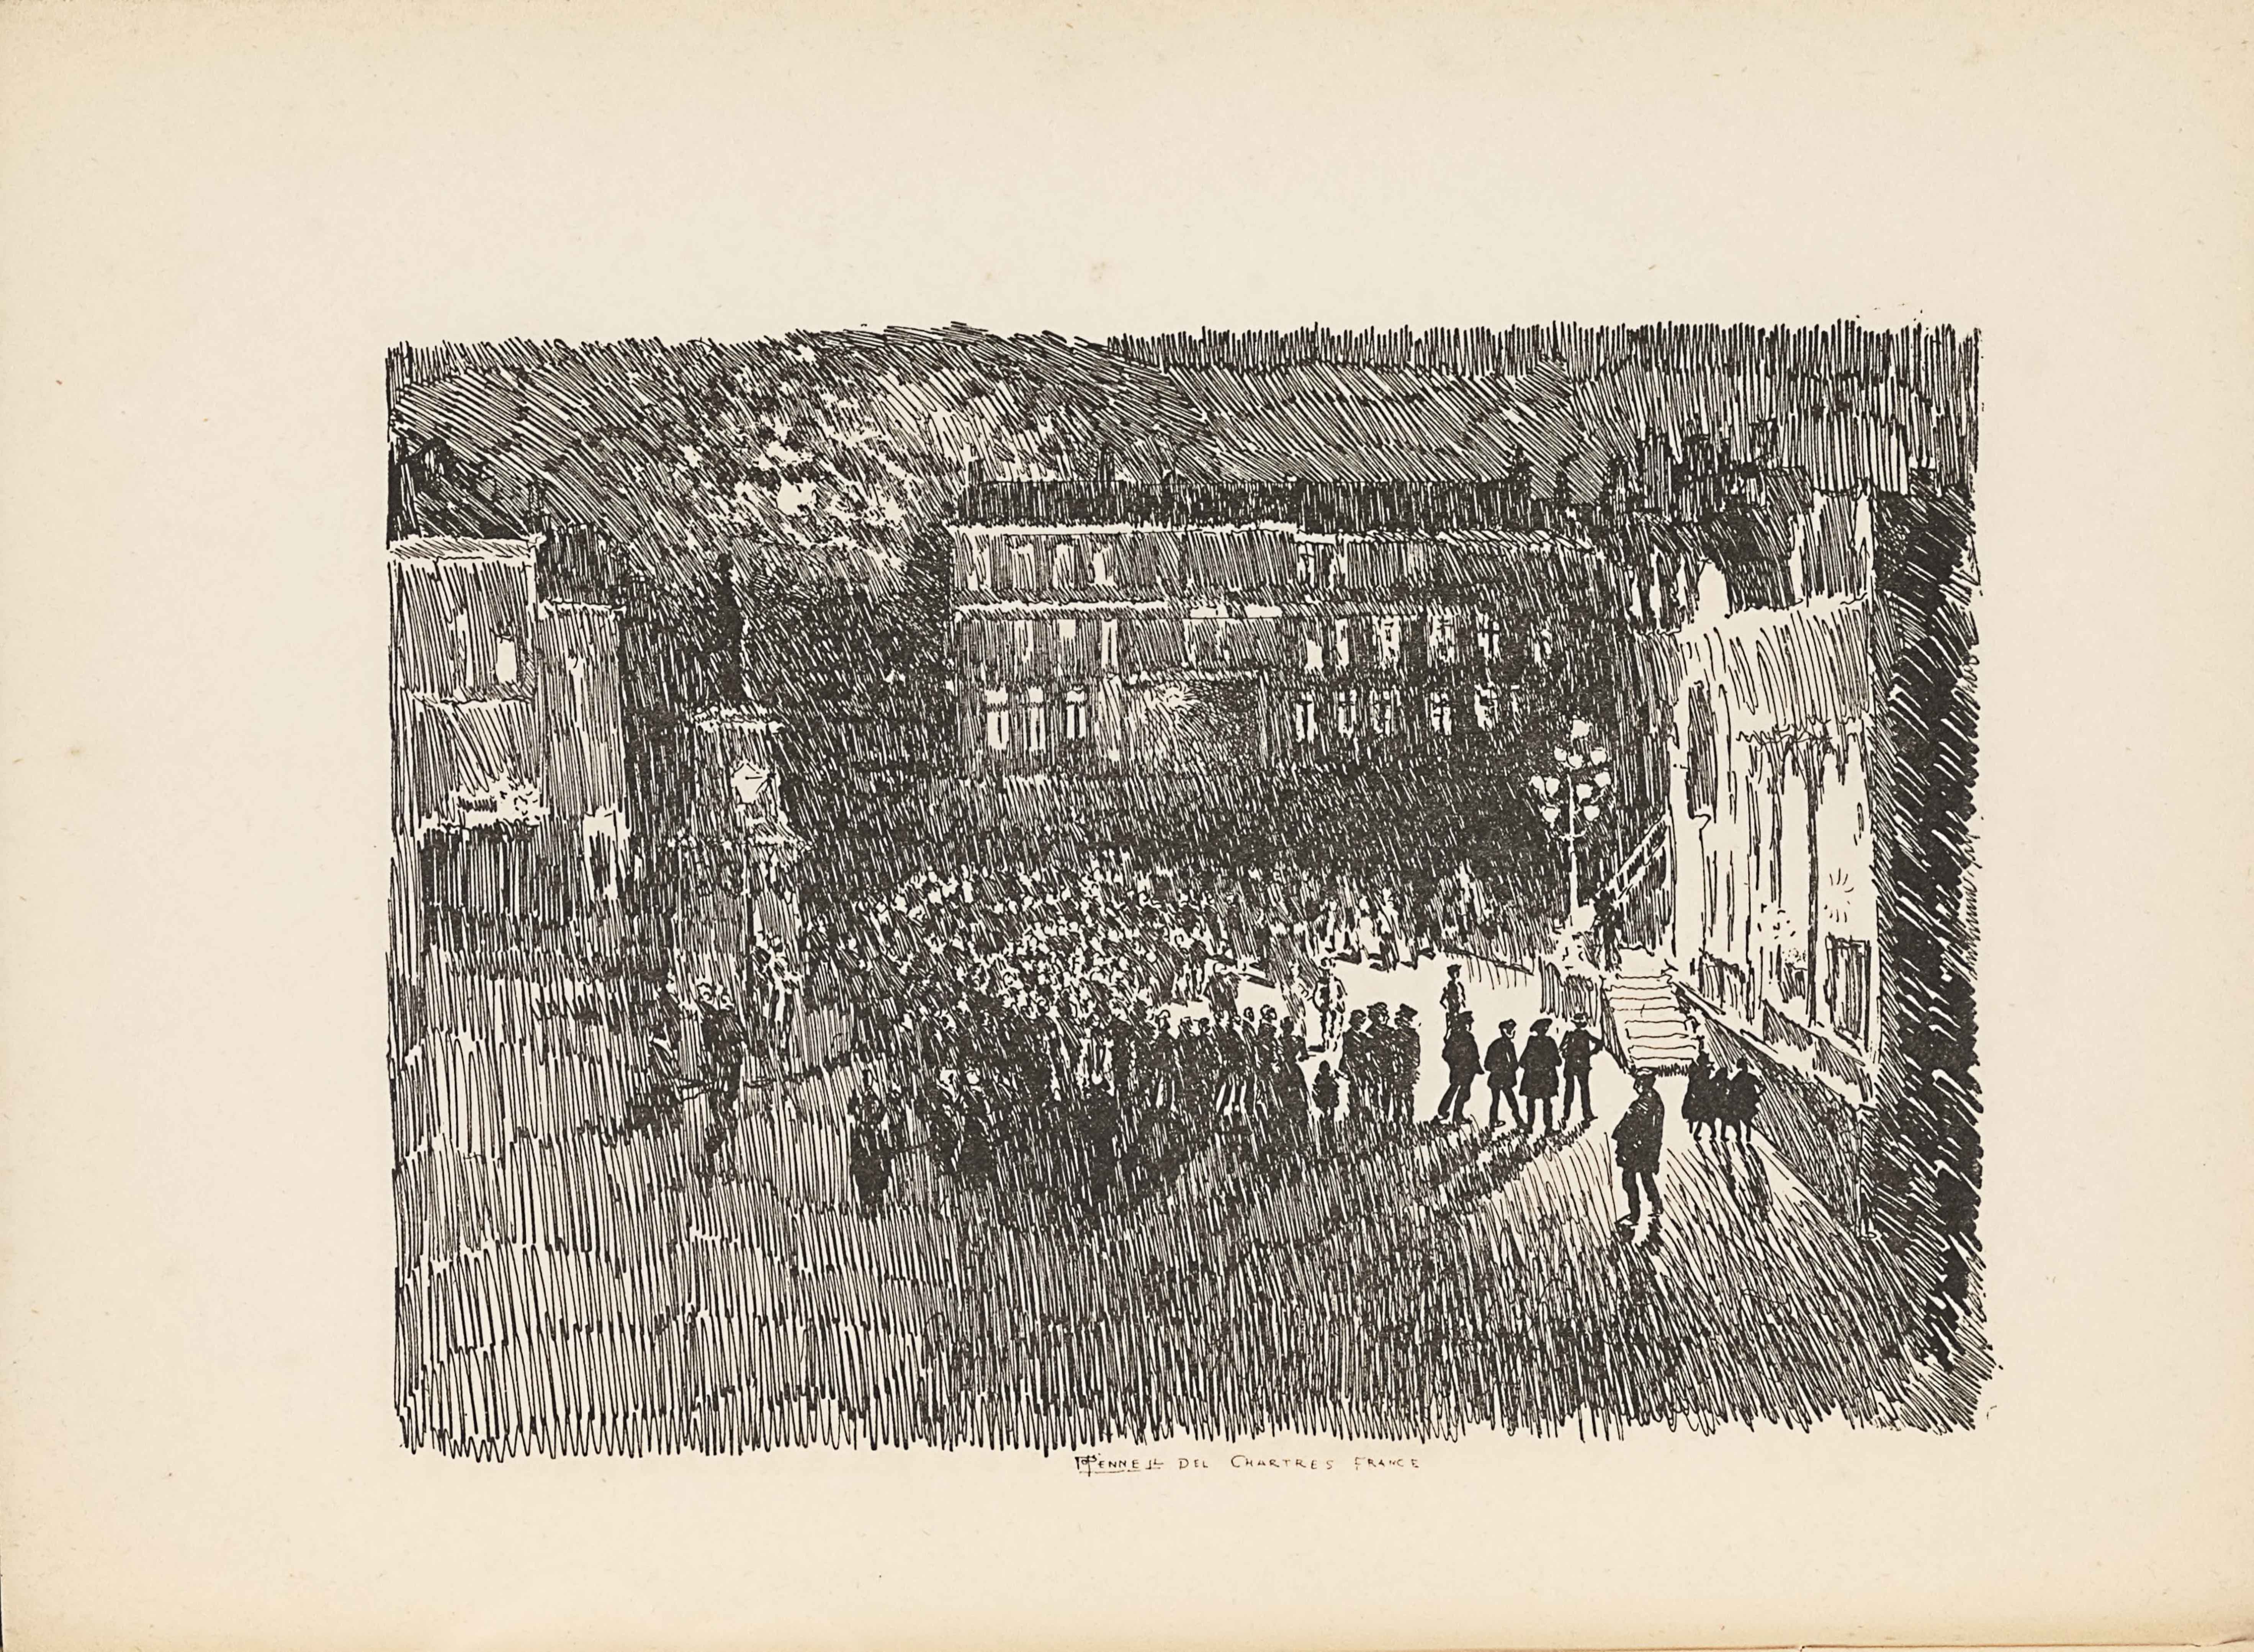 The line-block reproduction of a pen-and-ink drawing by Joseph Pennell is in landscape orientation. The image shows a city square with a gathering of people facing a person standing up on a staircase. There is a darkness to the image because of the drawing style, which is comprised of a series of vertical and diagonal lines drawn in a hatching formation. On the left side of the image is a series of vaguely outlined buildings, which reach up to three-quarters the height of the page. Slightly to the right of the buildings is a clock tower with a tall pointed roof. To the right of the clock tower is a group of people standing, visible by their light and circular heads between dark vertical lines. The group is formed in a semi-circle and turned to face towards the right side of the image. In the background of the group is a row of buildings in a horizontal line across the top third of the page. The buildings have three floors with a window appearing at each floor height and consistently all the way across horizontally. The buildings are all conjoined and have a shared black roof. The semi-circle formation of people on the ground are lit by a tall street lamp with about six lights. The light is beside the steps that lead to the front of a building that takes up the height of the right side of the page. A person standing on the steps appears as a dark figure underneath the lamp. There is a small group of people standing in front of the steps on the foreground side away from the rest of the large group. The building on the right side of the page is the only light coloured building in the area. The dark foreground is, made entirely of hatched and vertical lines. The background behind the buildings is made of a series of hatched vertical lines as well, but these are closer together and darker. There is no borderline around the outside edge of the image. The image edges are instead made of vertical lines ending roughly in a straight line. Centered underneath the image is the 